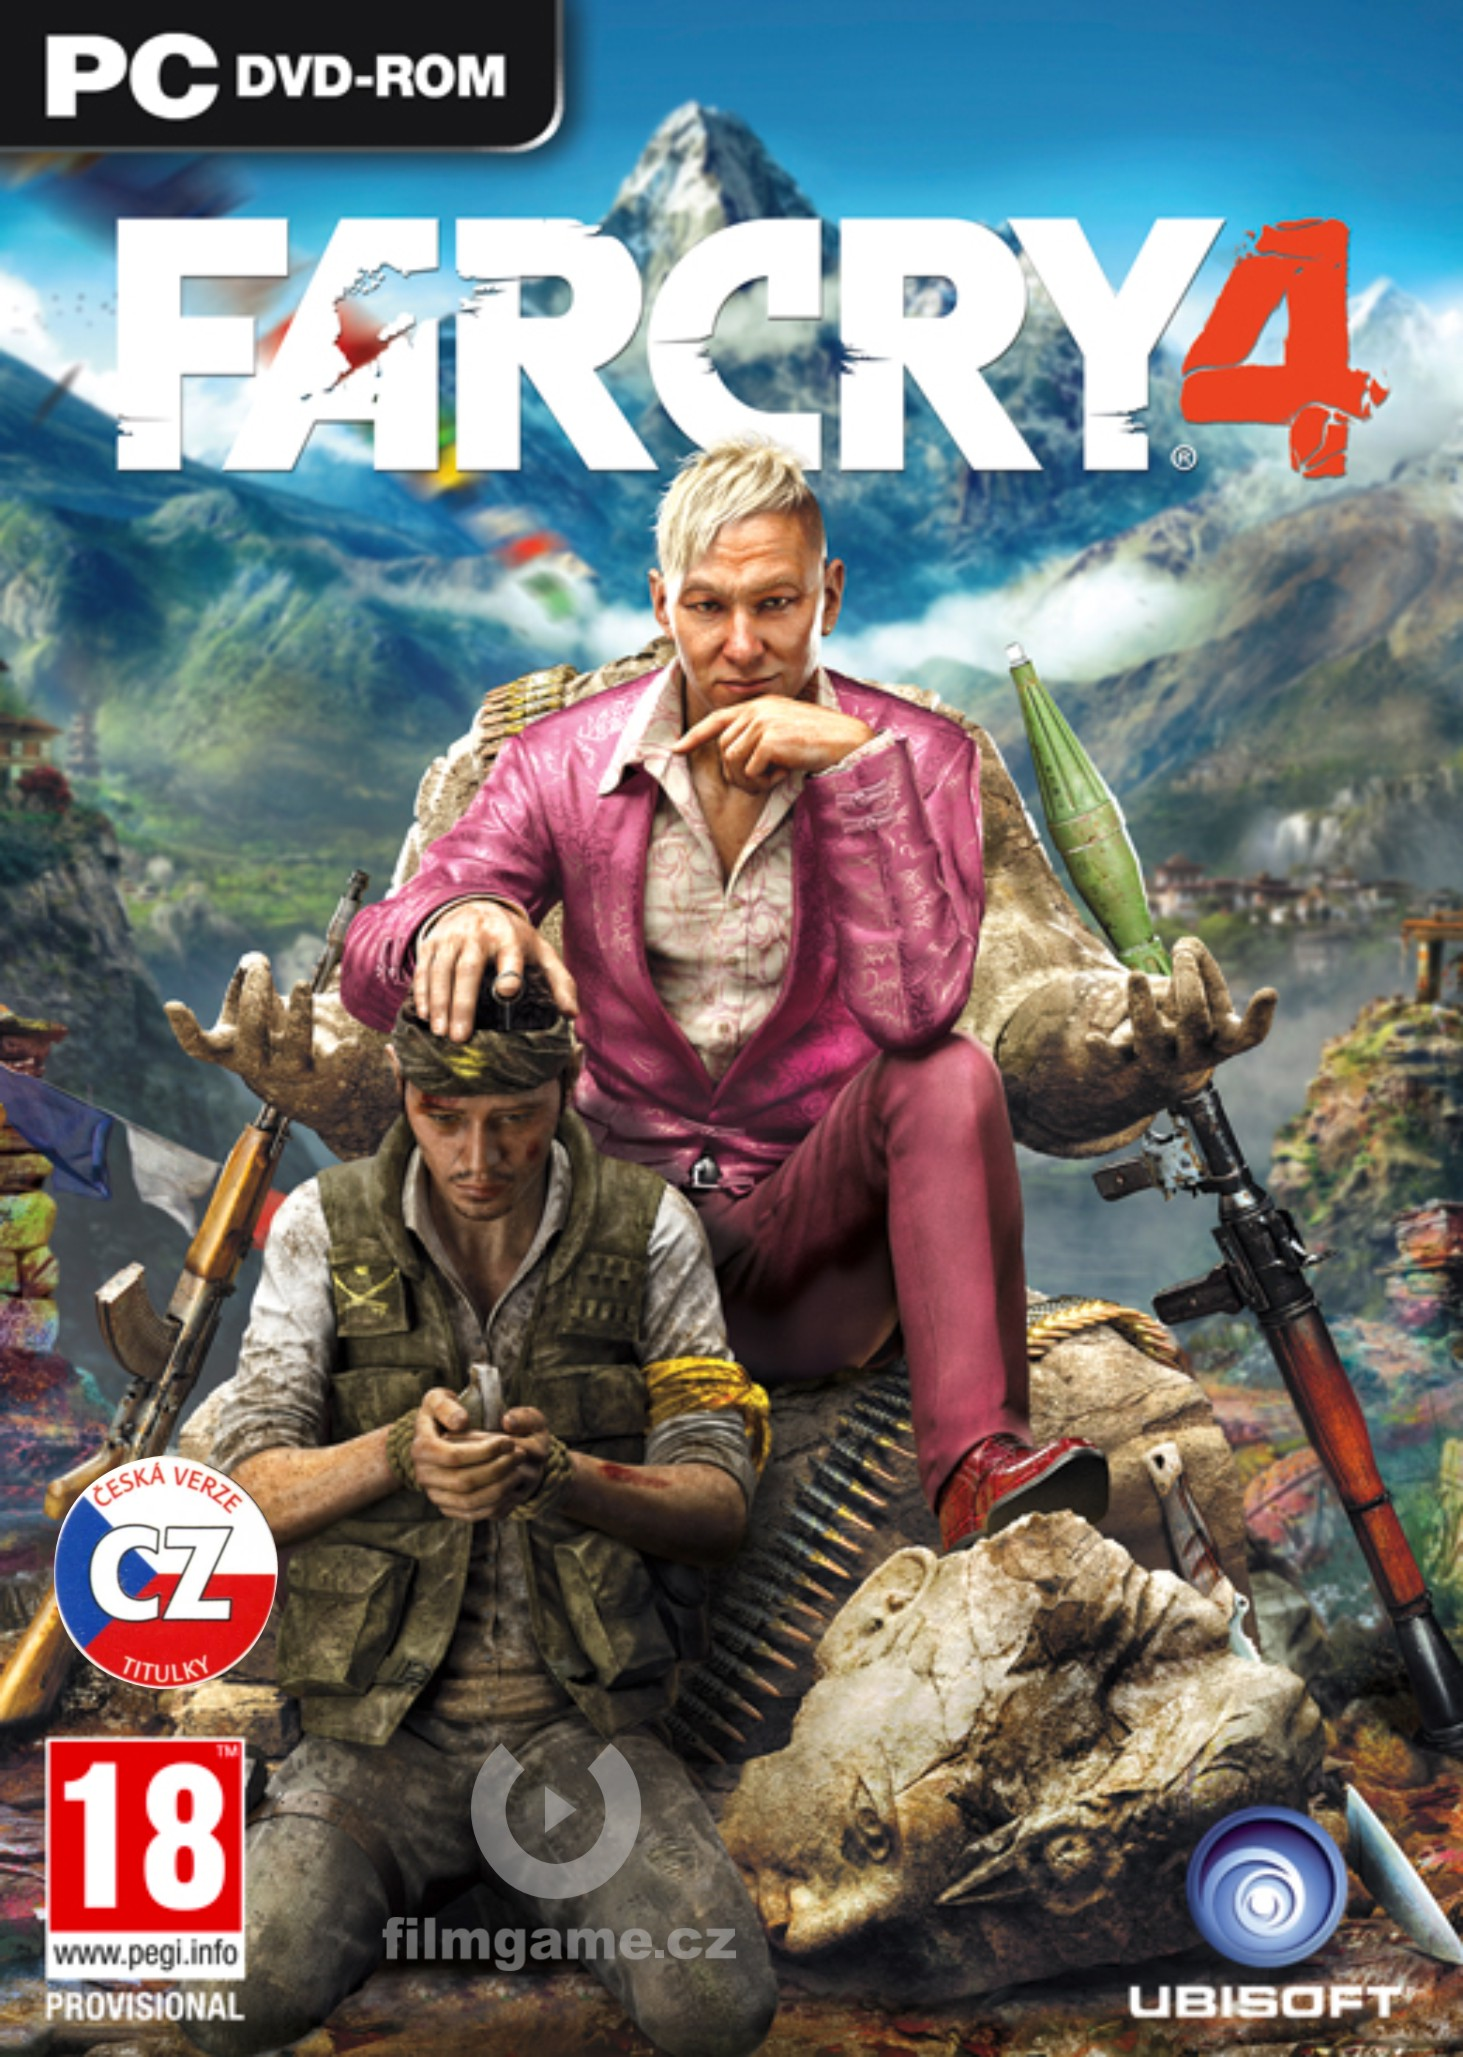 FAR CRY 4 CZ - PC